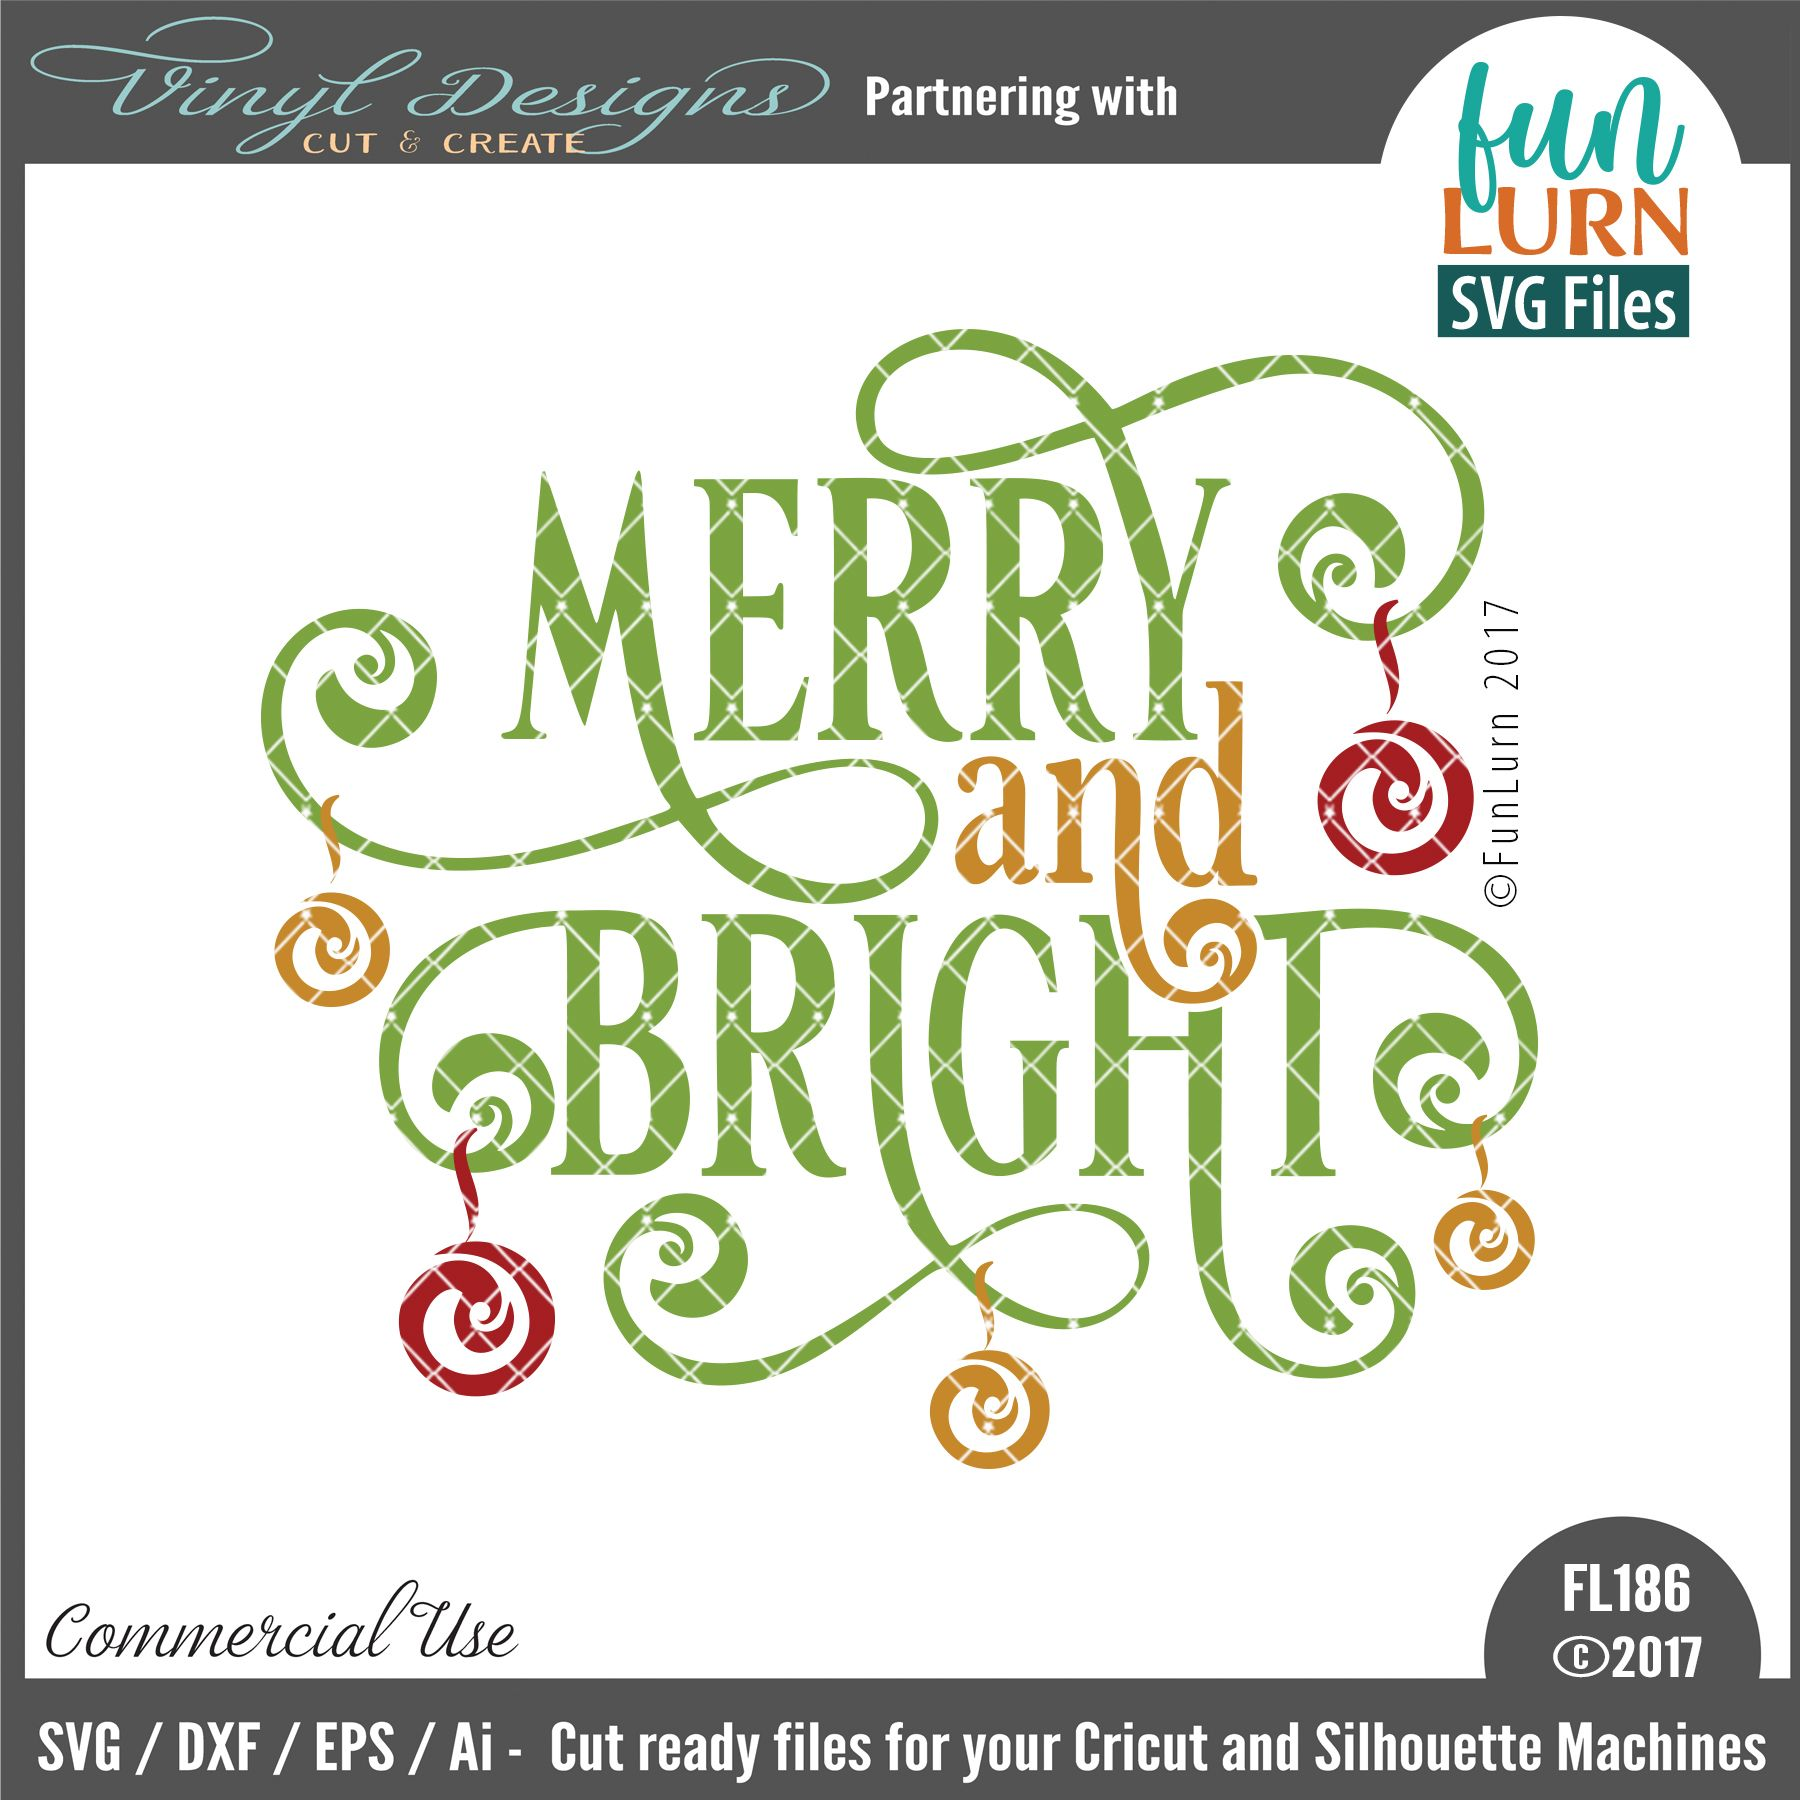 FL186 Merry and Bright. Sold By FunLurn SVG FilesSmall